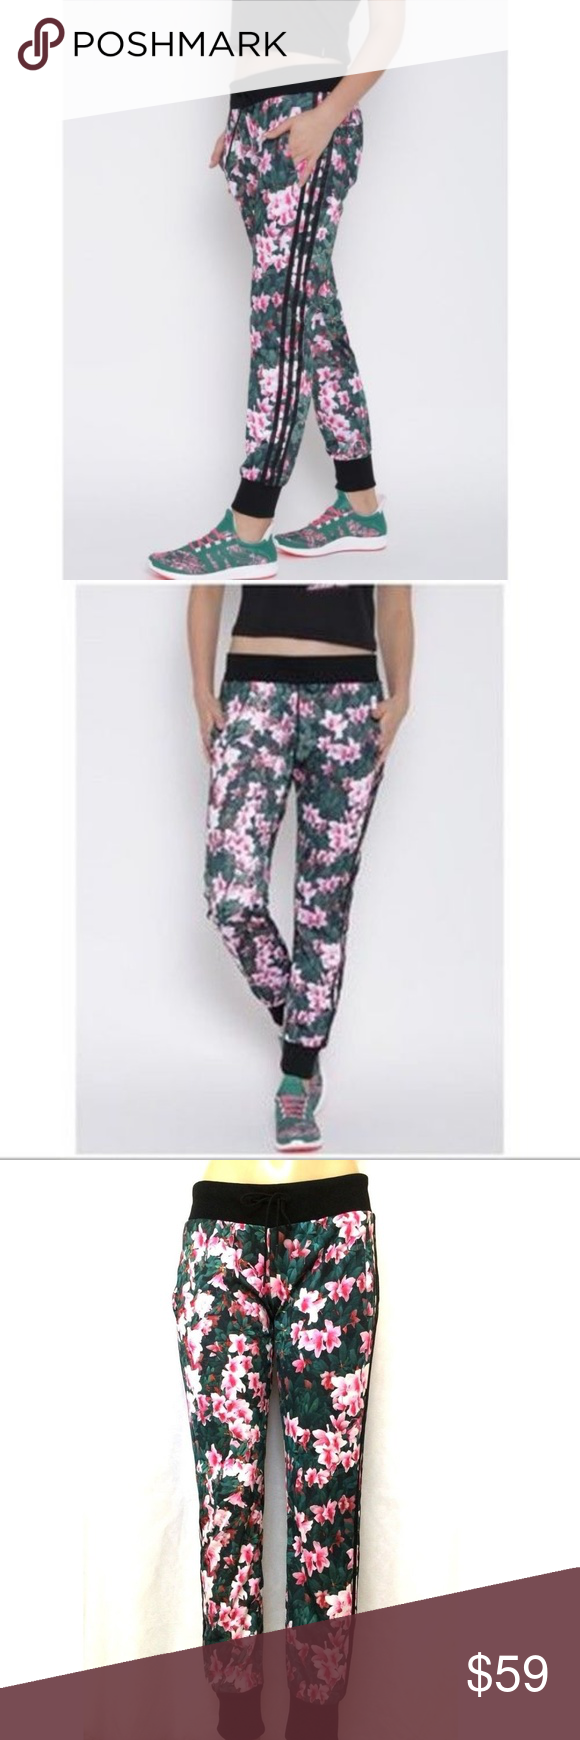 Adidas Neo Floral Print Track Pant Multicolor Pink Adidas